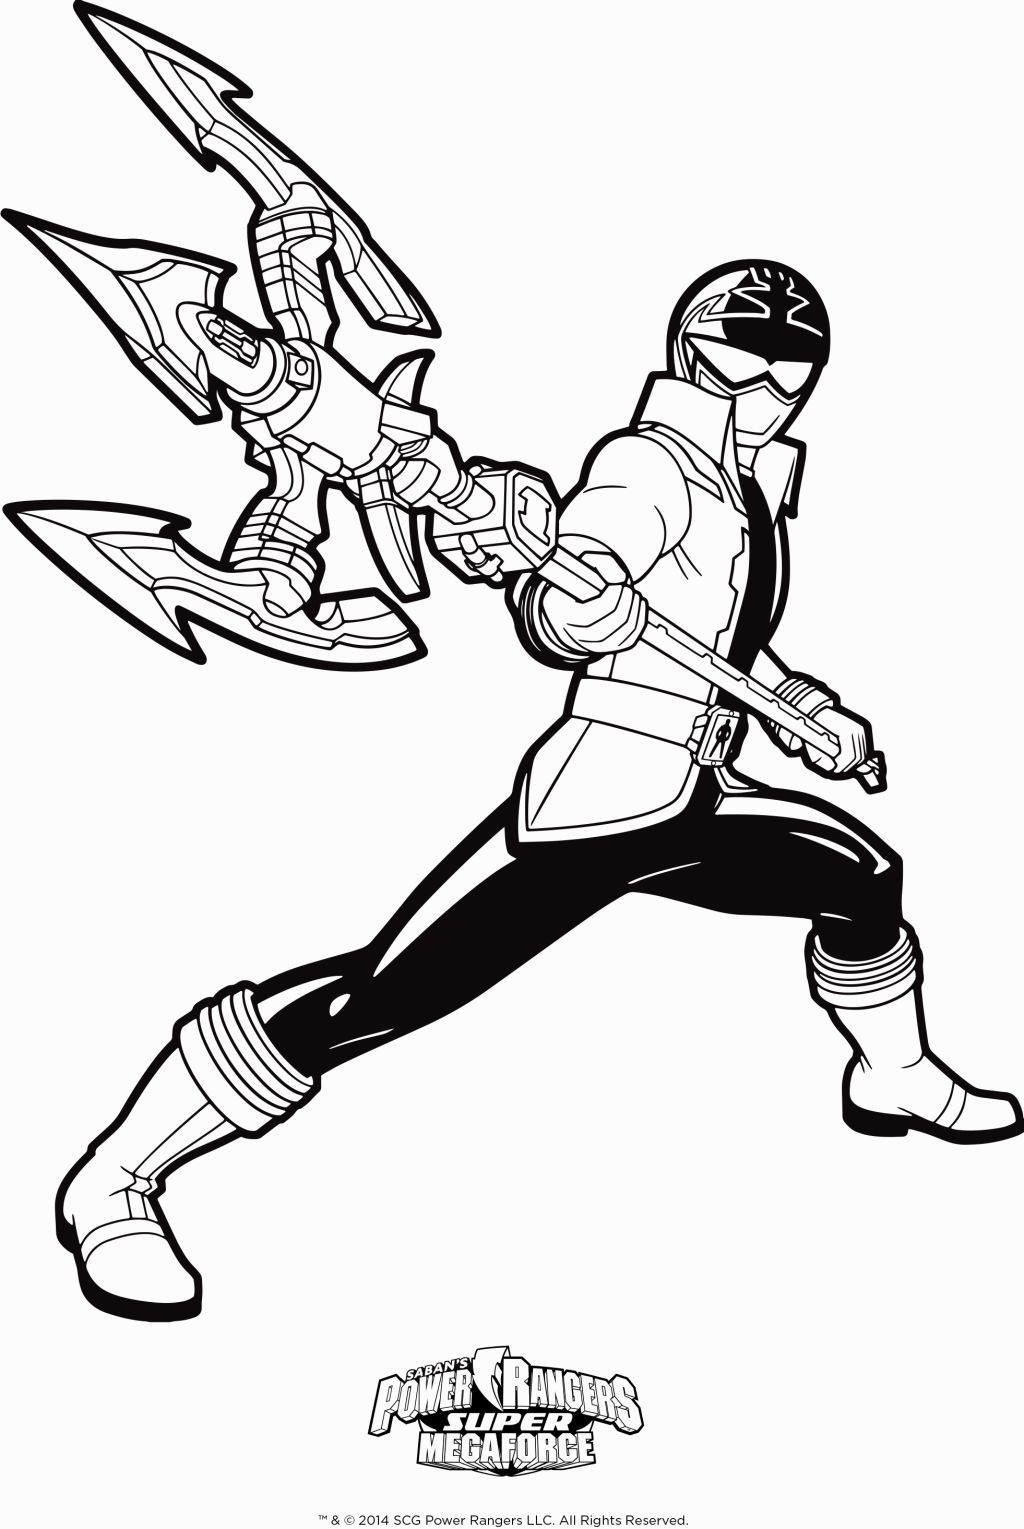 Power Rangers Super Megaforce Coloring Pages | Coloring Pages ...